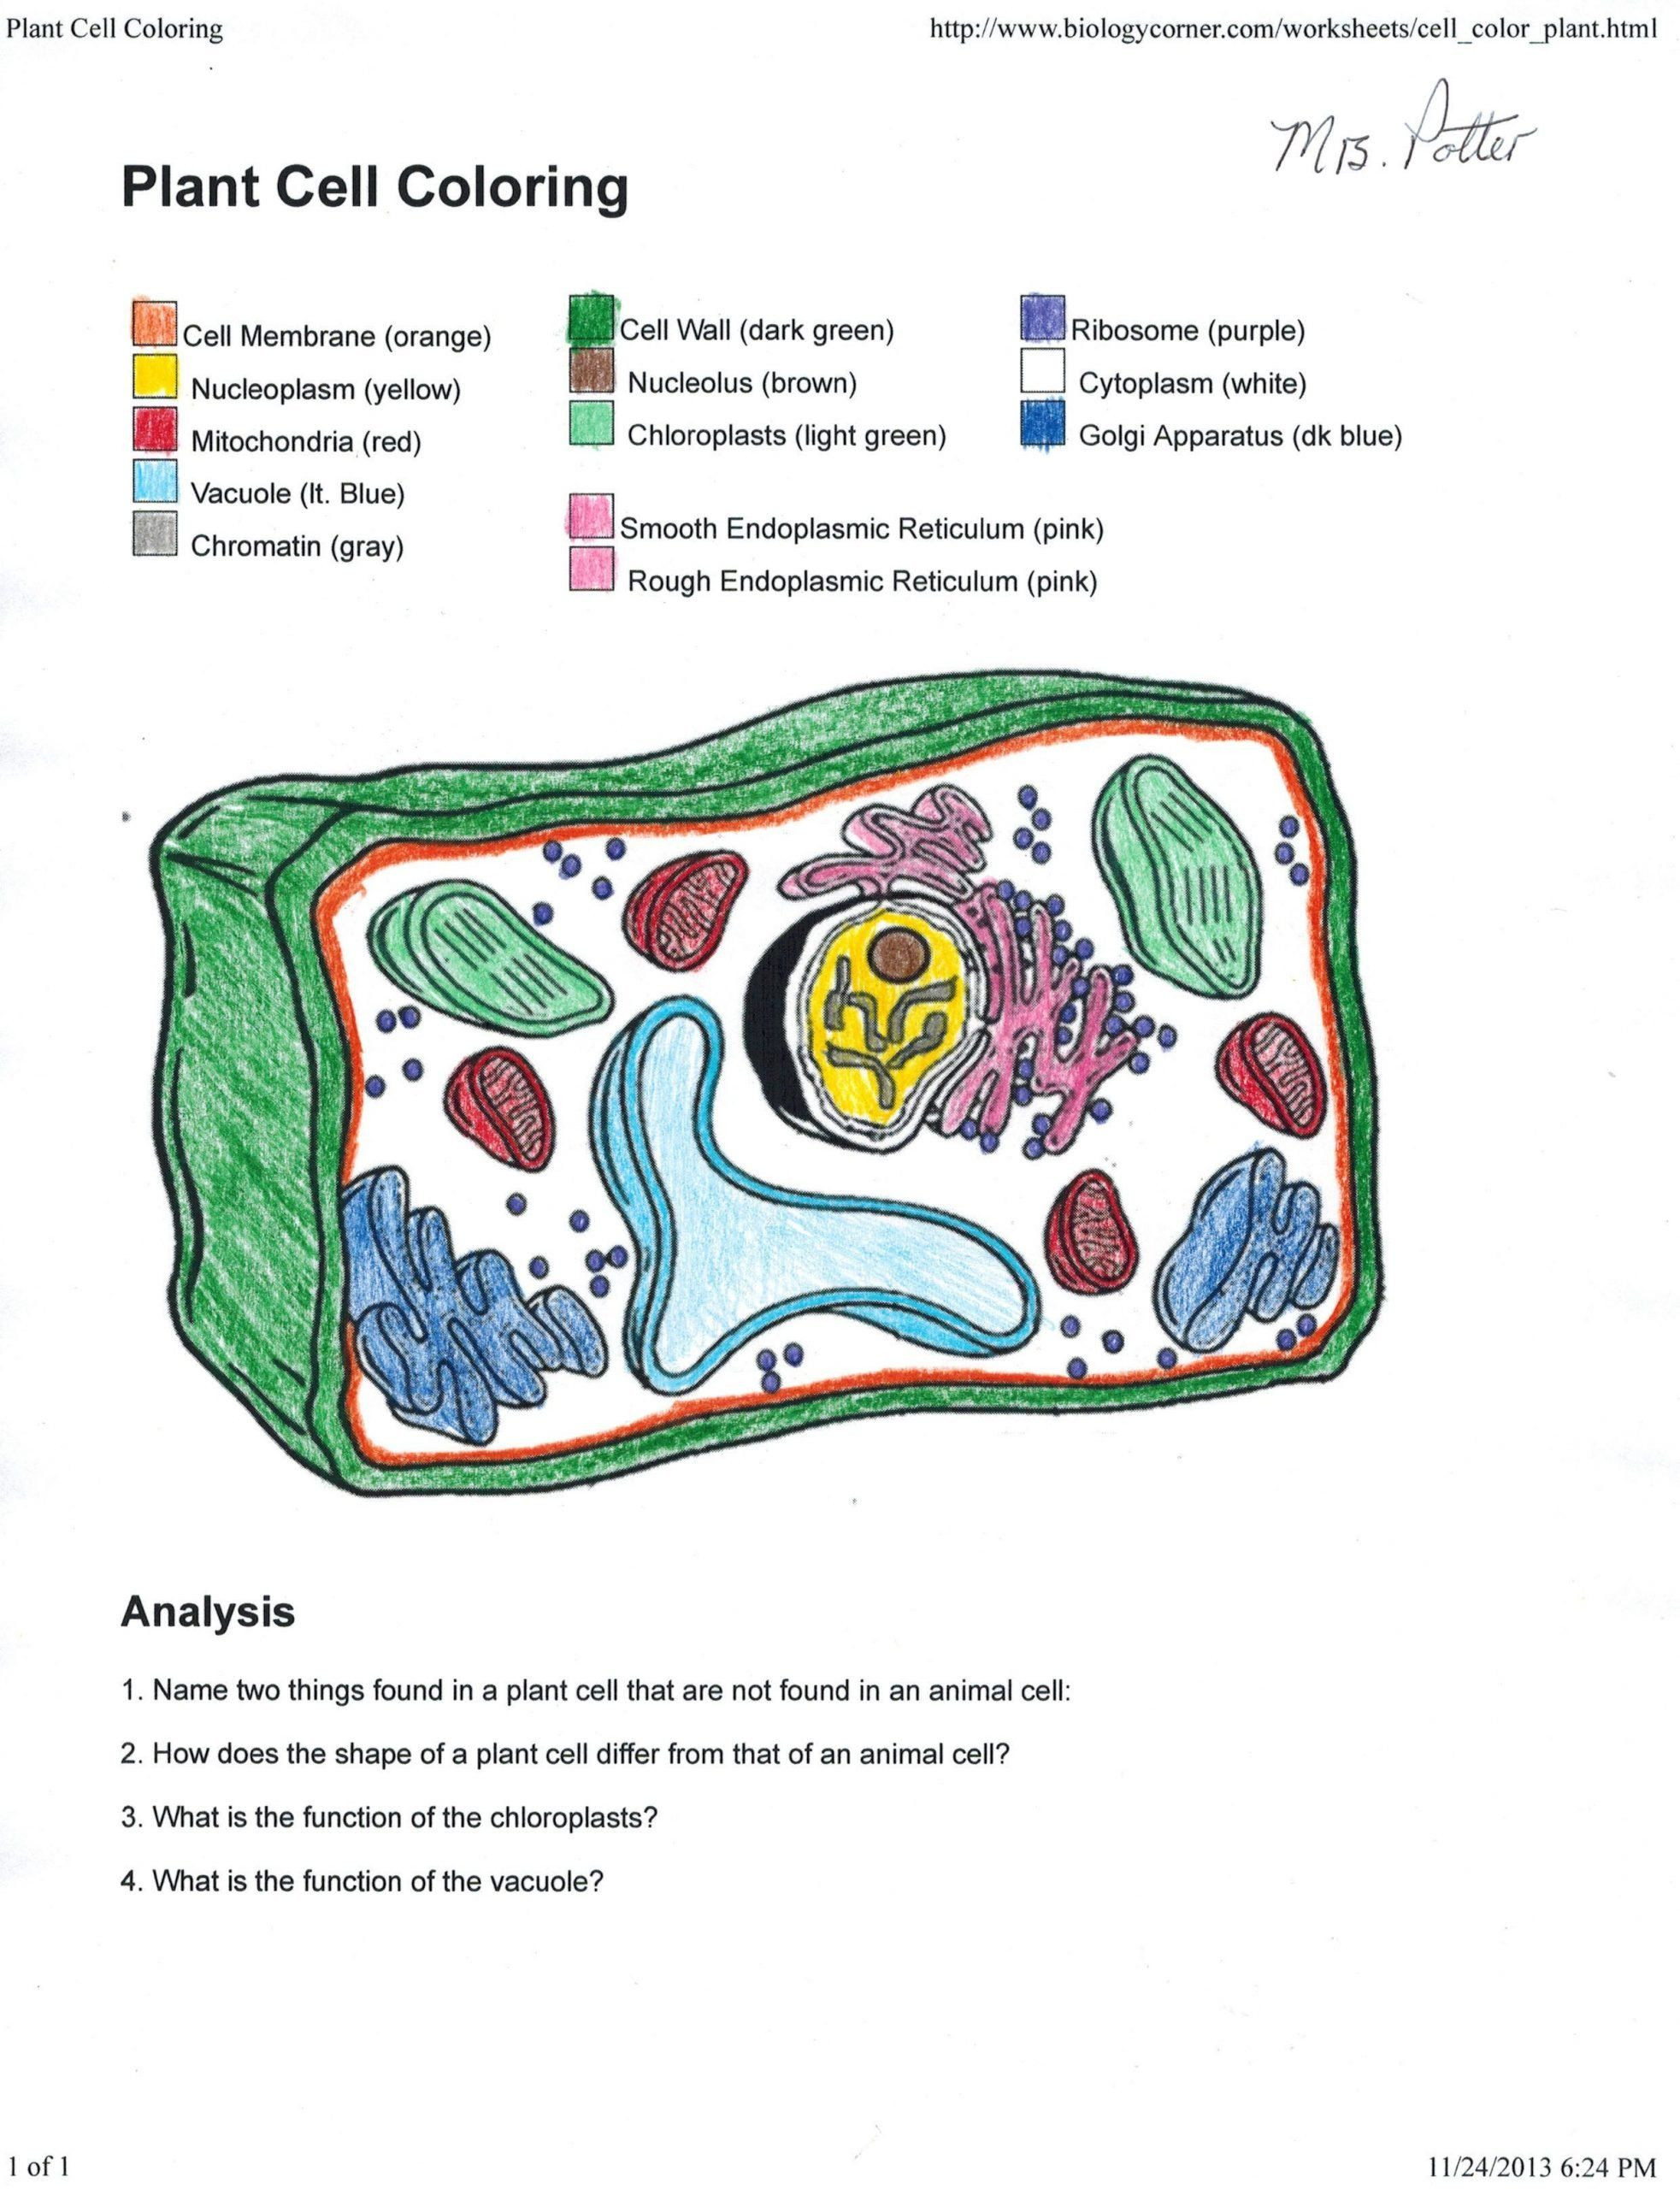 Animal Cells Coloring Worksheet Plant Cell Coloring Key 0